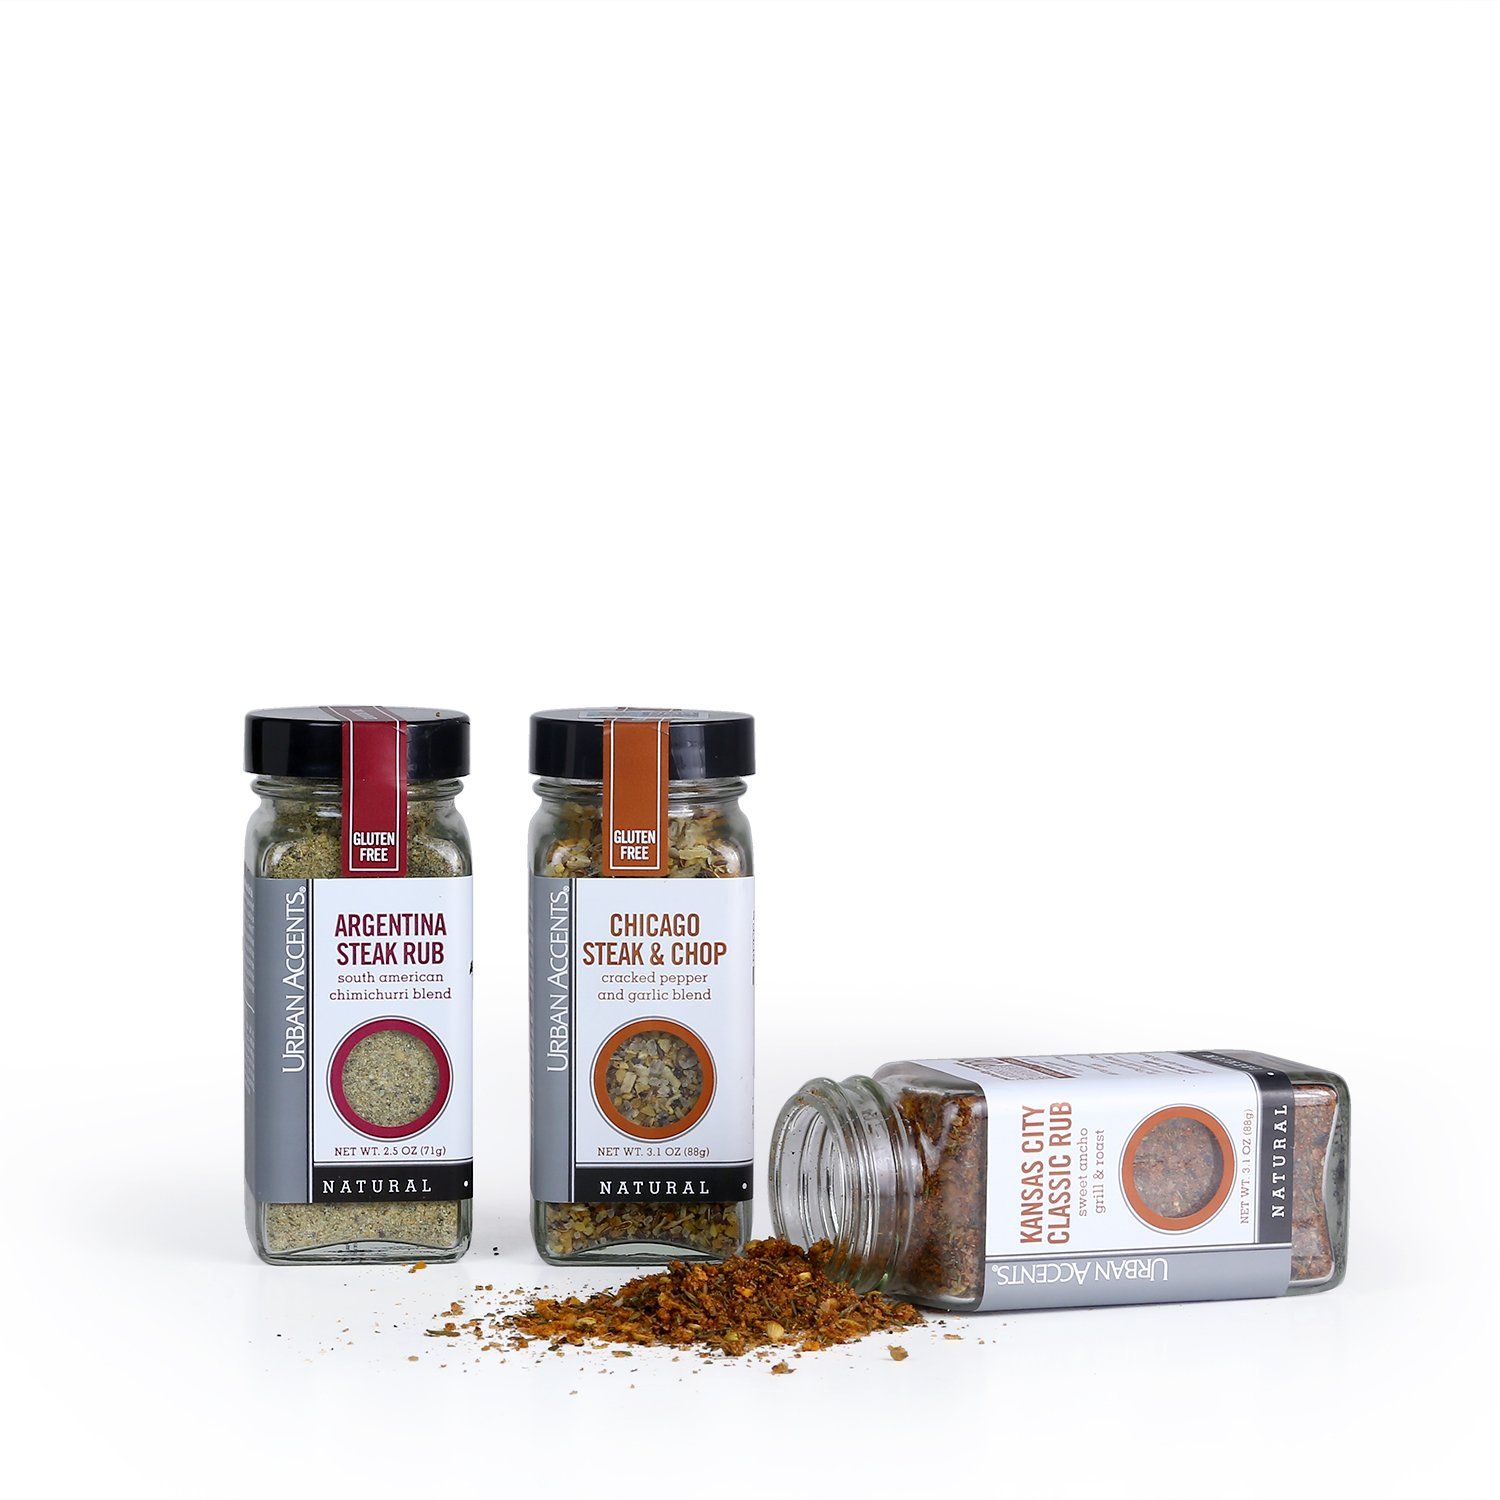 BUTCHER SHOP, A Gourmet Grilling Rub Trio of Spices Gift Set, Perfect for Weddings, Housewarmings or Any Occasion - Urban Accents by Urban Accents (Image #2)